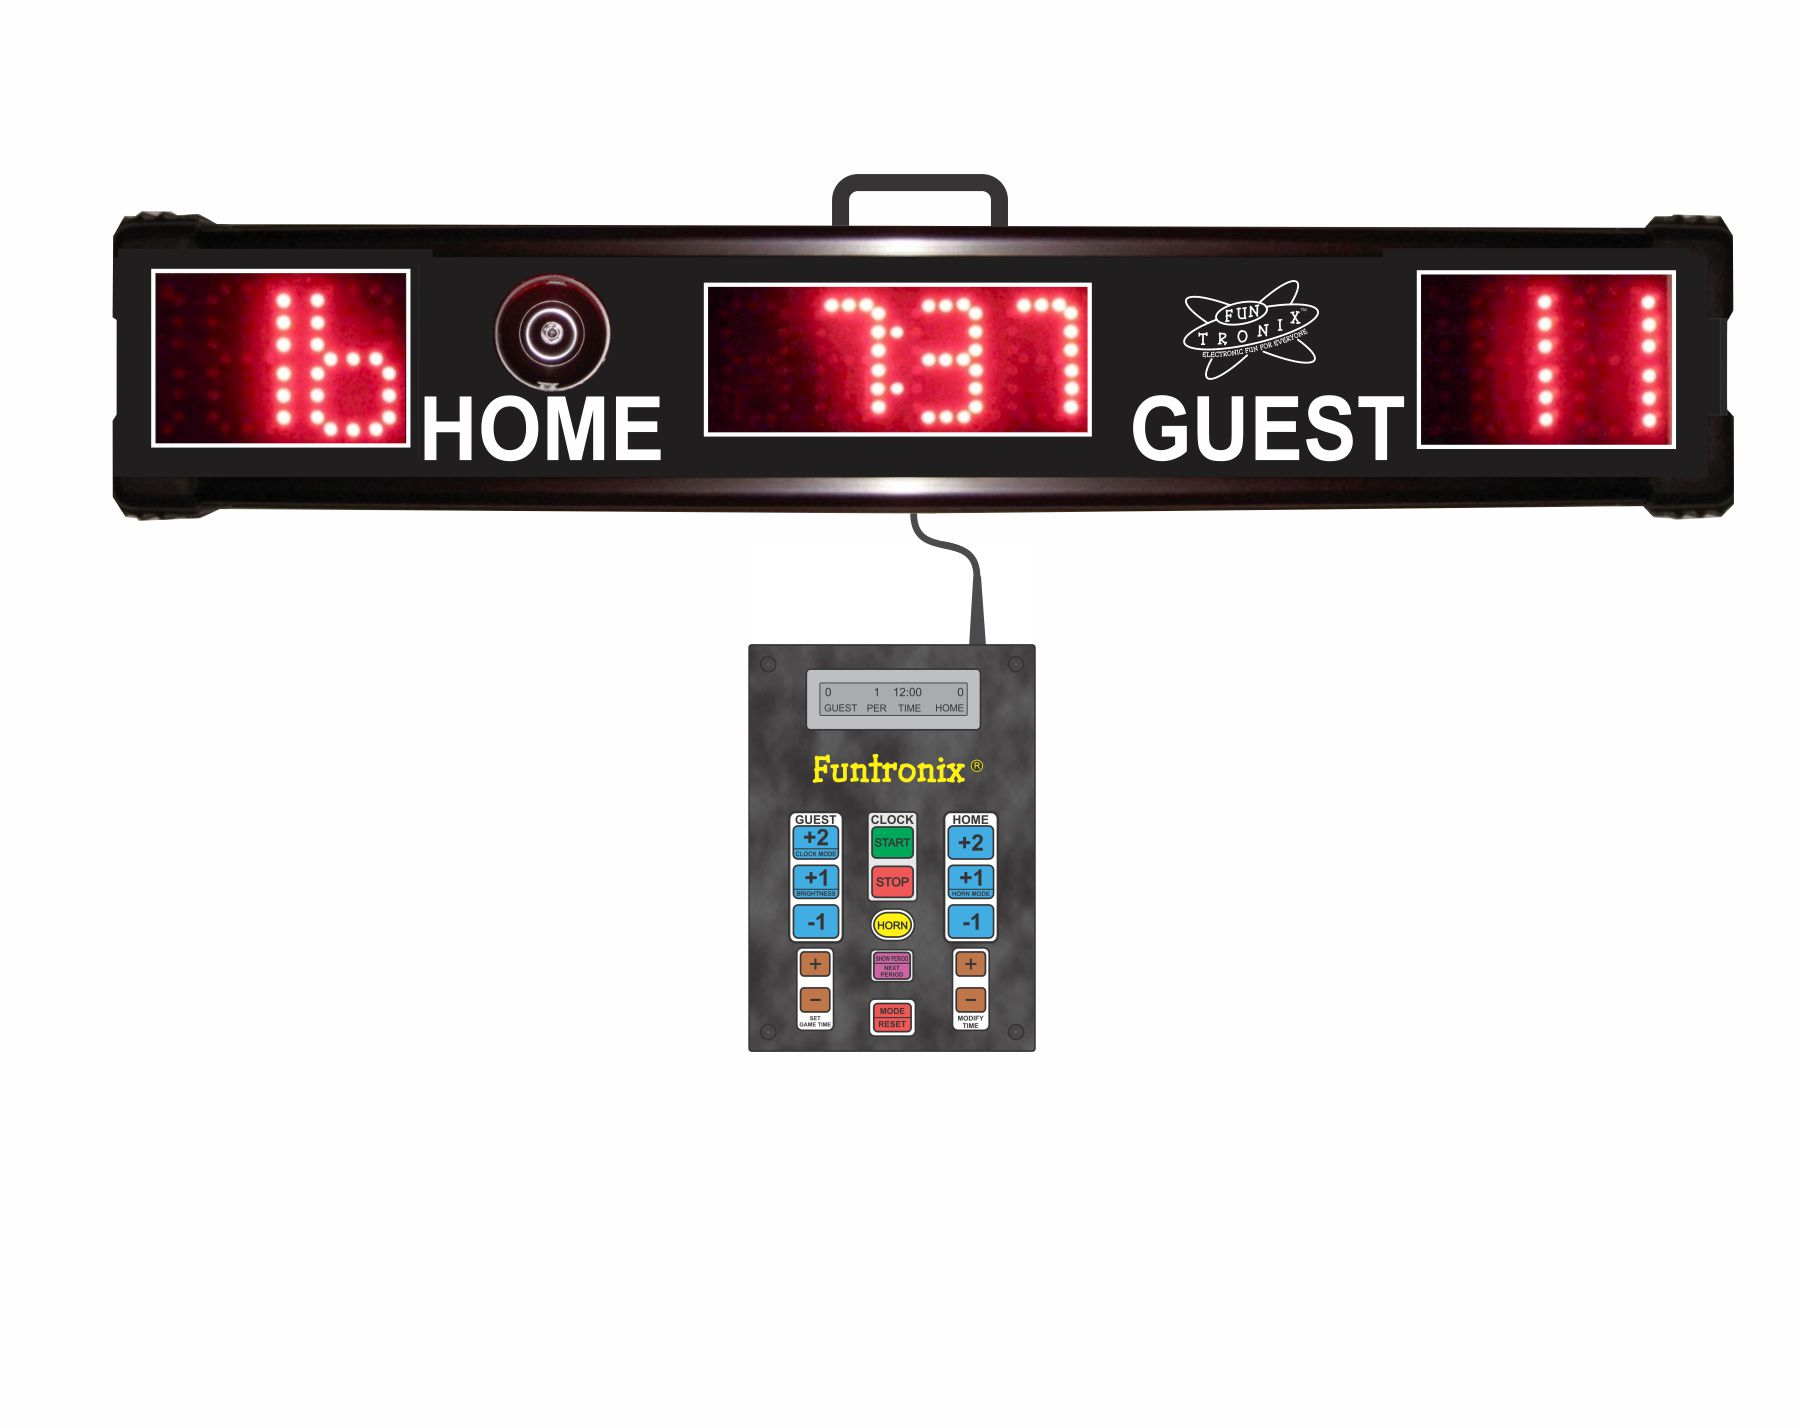 Portable Scoreboard front view with keypad